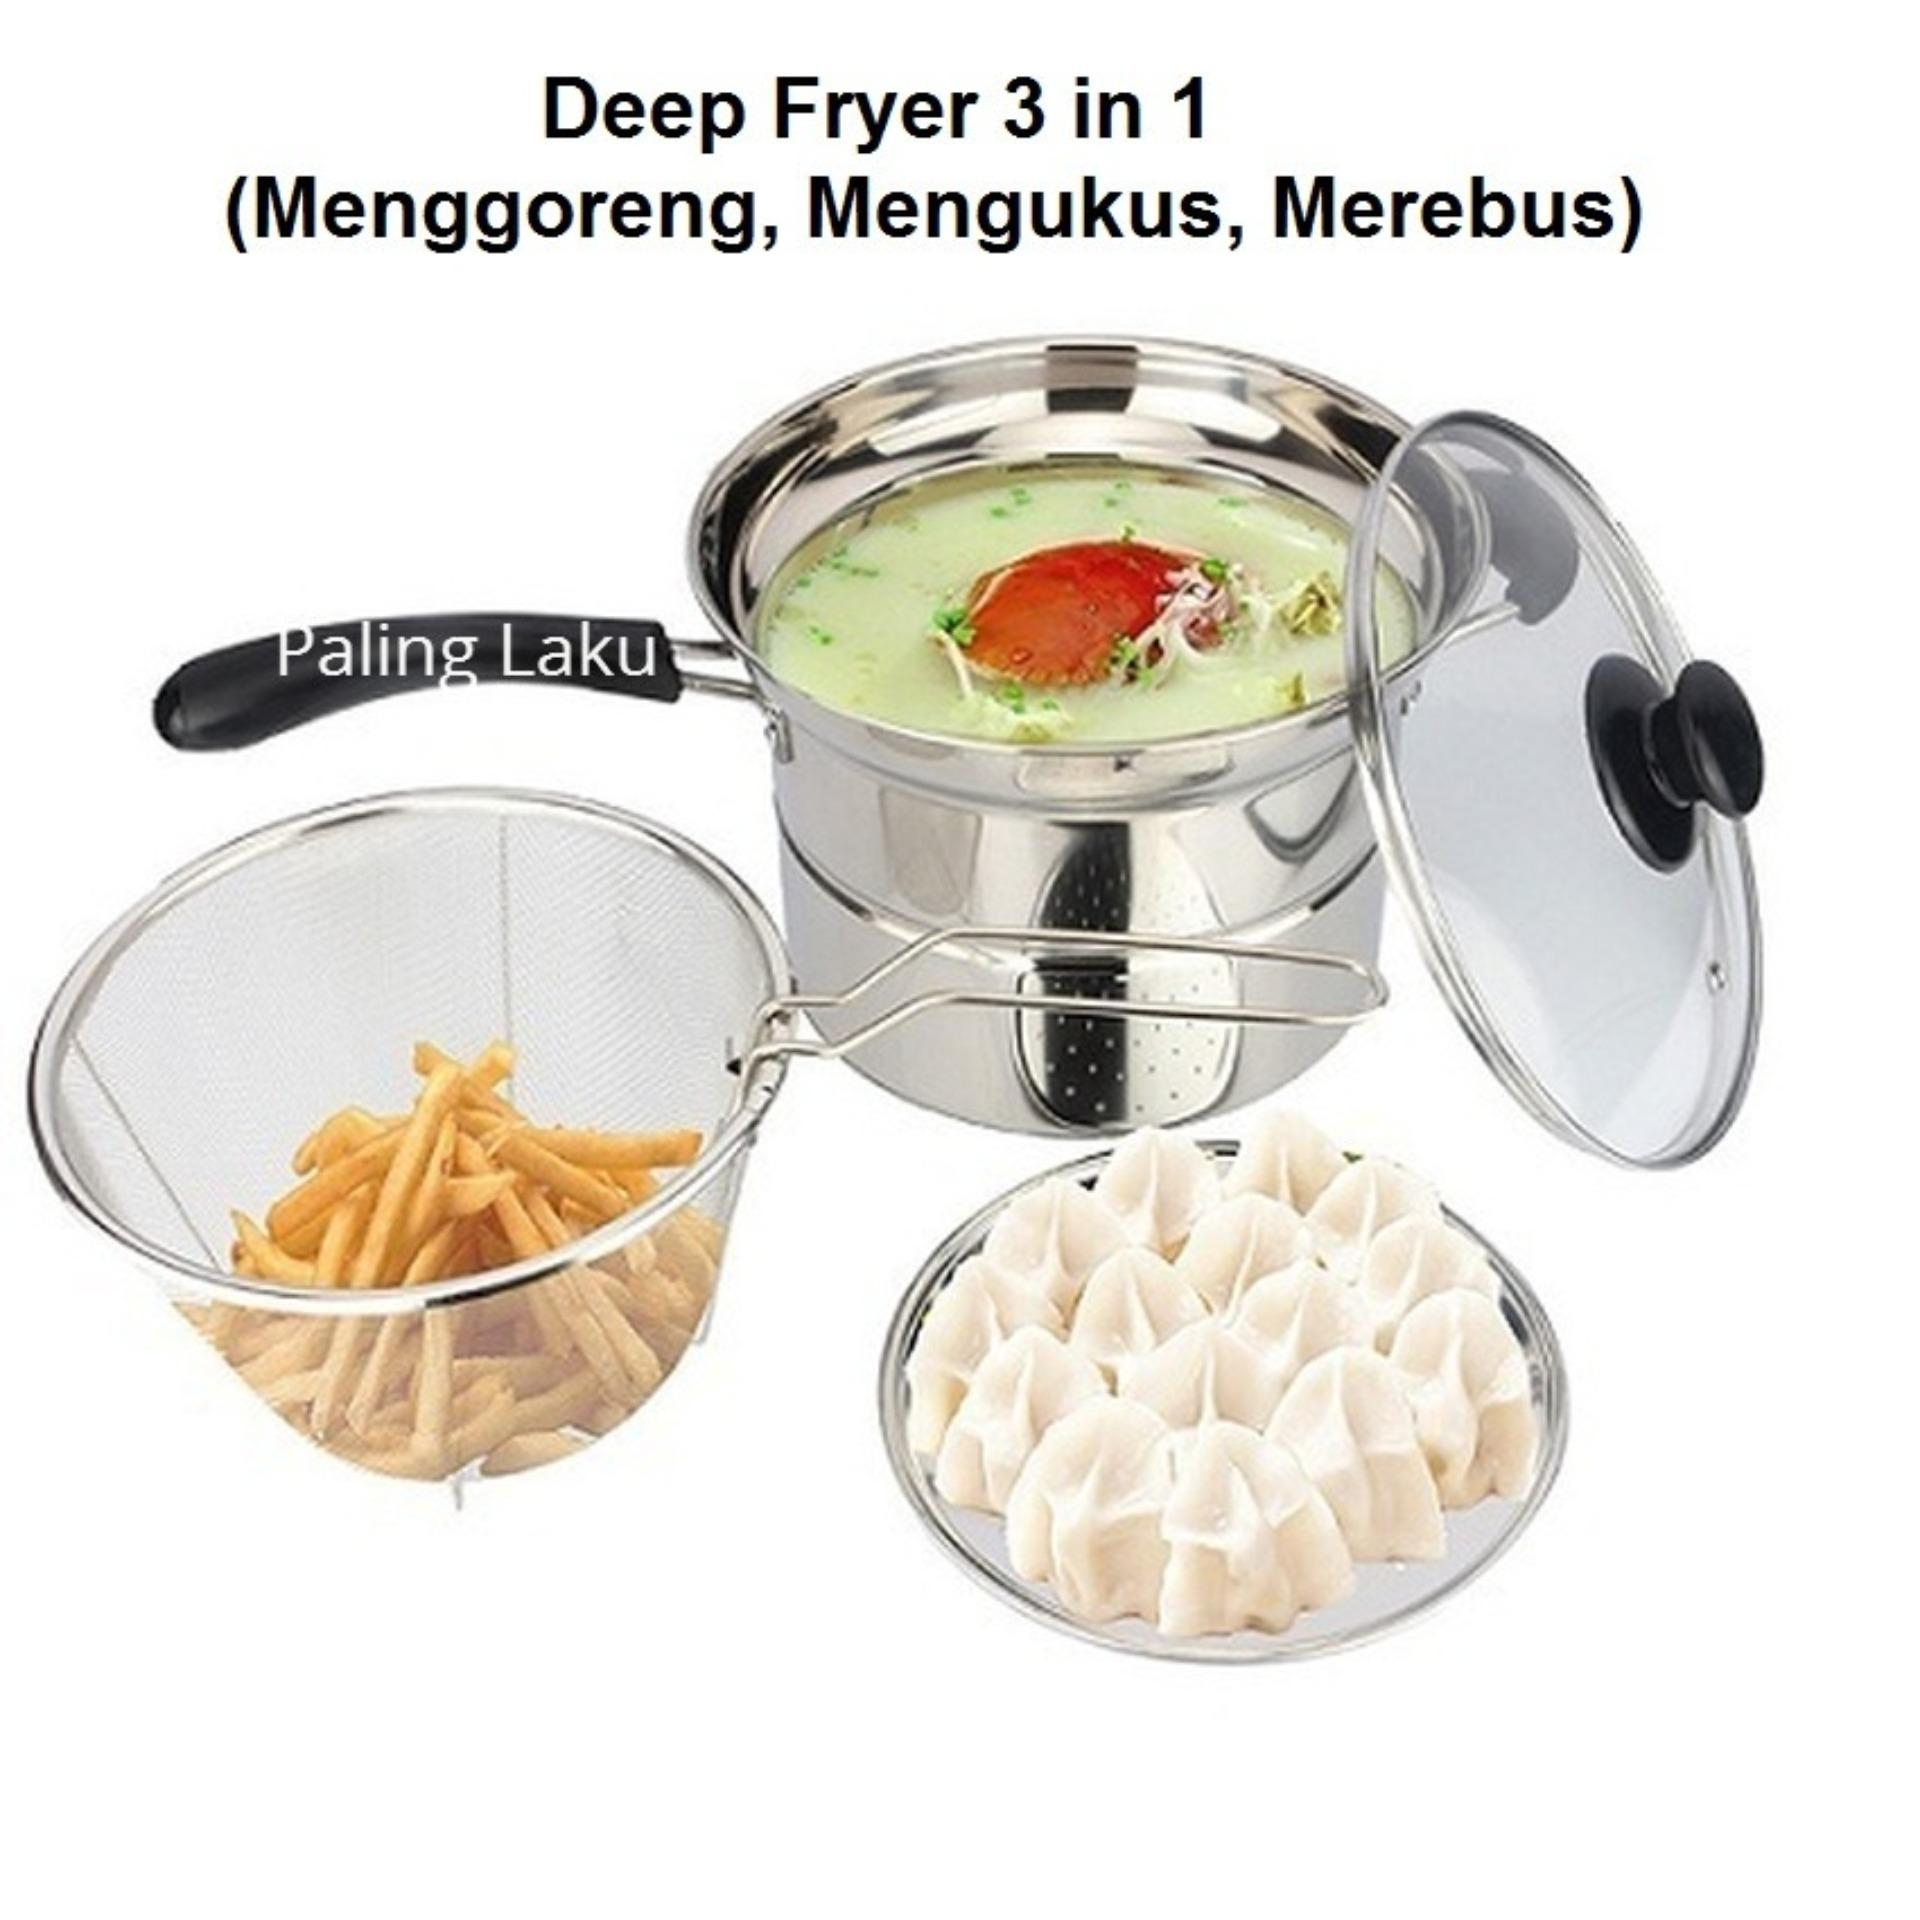 Toko Deep Fryer 22 Cm Multifungsi 3 In 1 Stainless Paling Laku